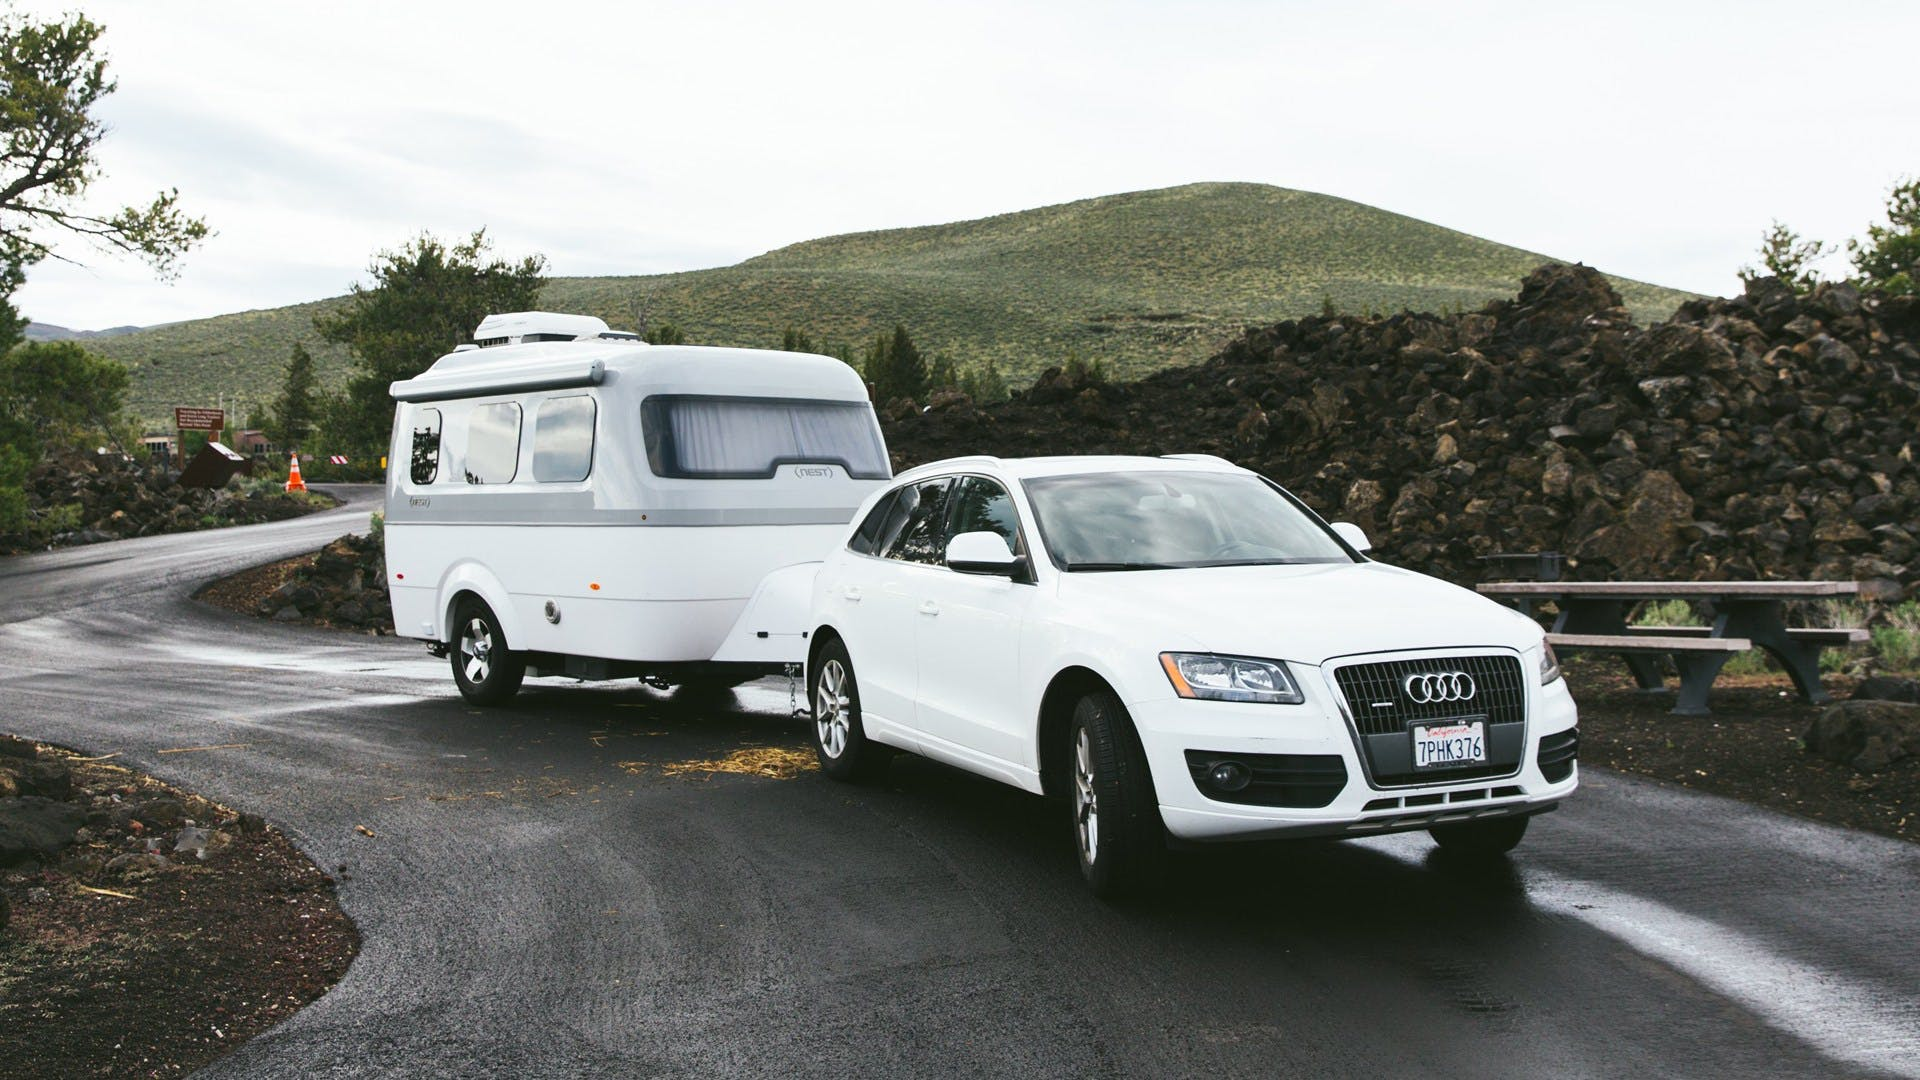 Airstream Travel Trailer Nest Audi Q3 small Sport utility vehicle towable mountain nature road